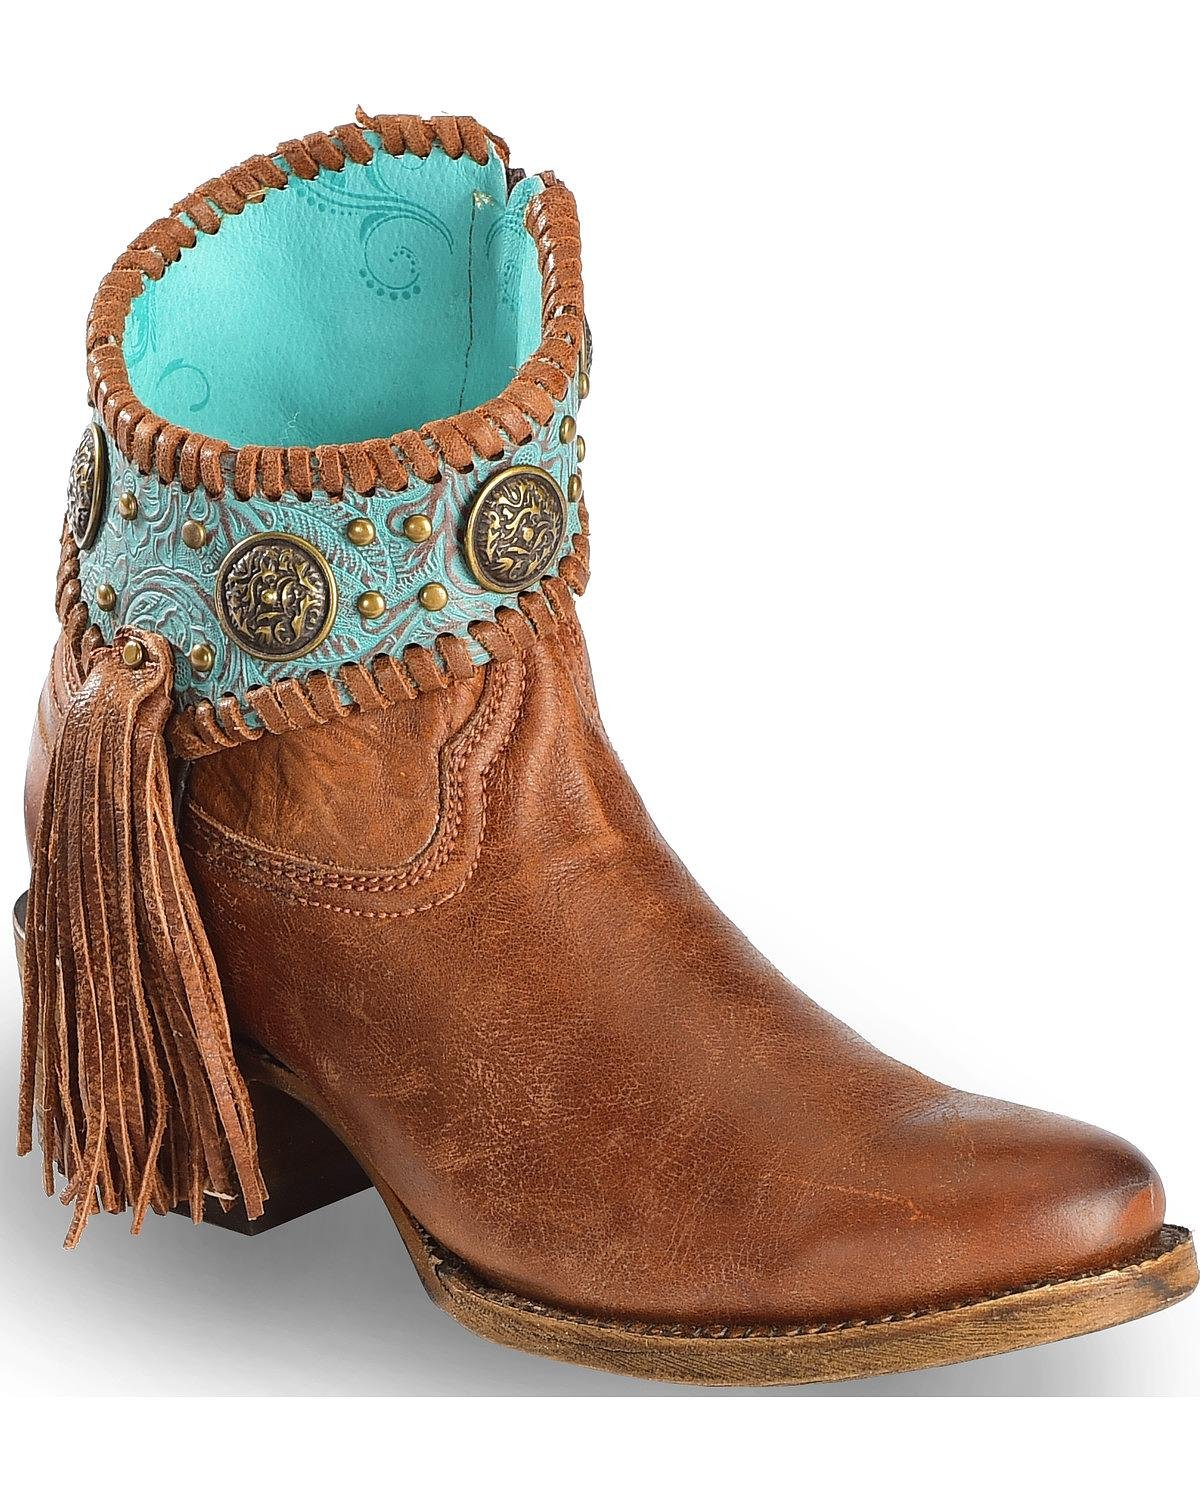 CORRAL Women's Turquoise Fringe Ankle Boot Round Toe - A3196 B01MUWCCRZ 8.5 B(M) US|Cognac/Turquoise